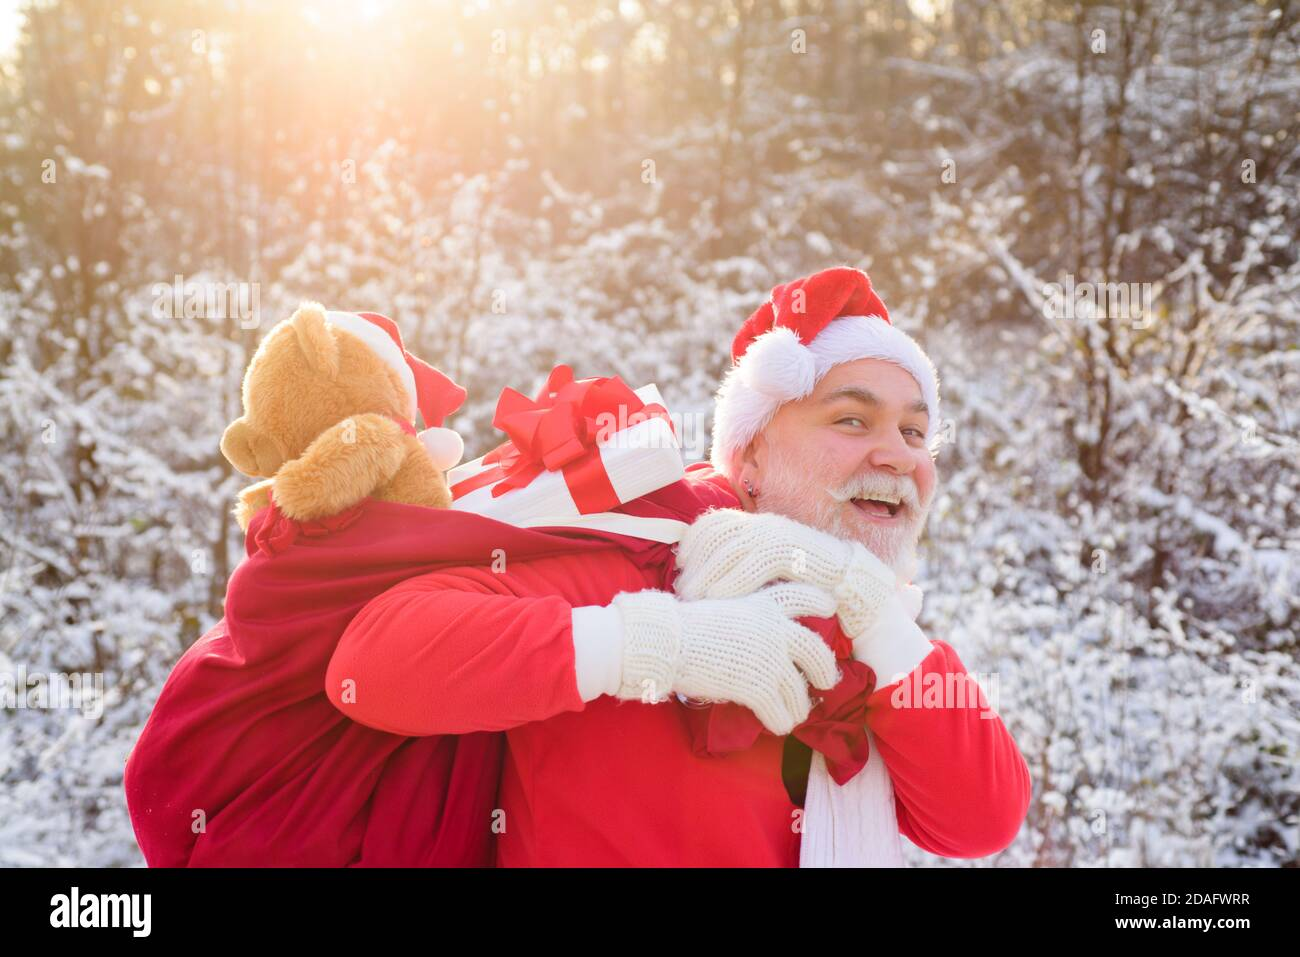 Santa Grandfather Deliver Gifts Santa Claus In Christmas Suits In Snowy Winter Mountain New Year And Xmas Is Coming Stock Photo Alamy